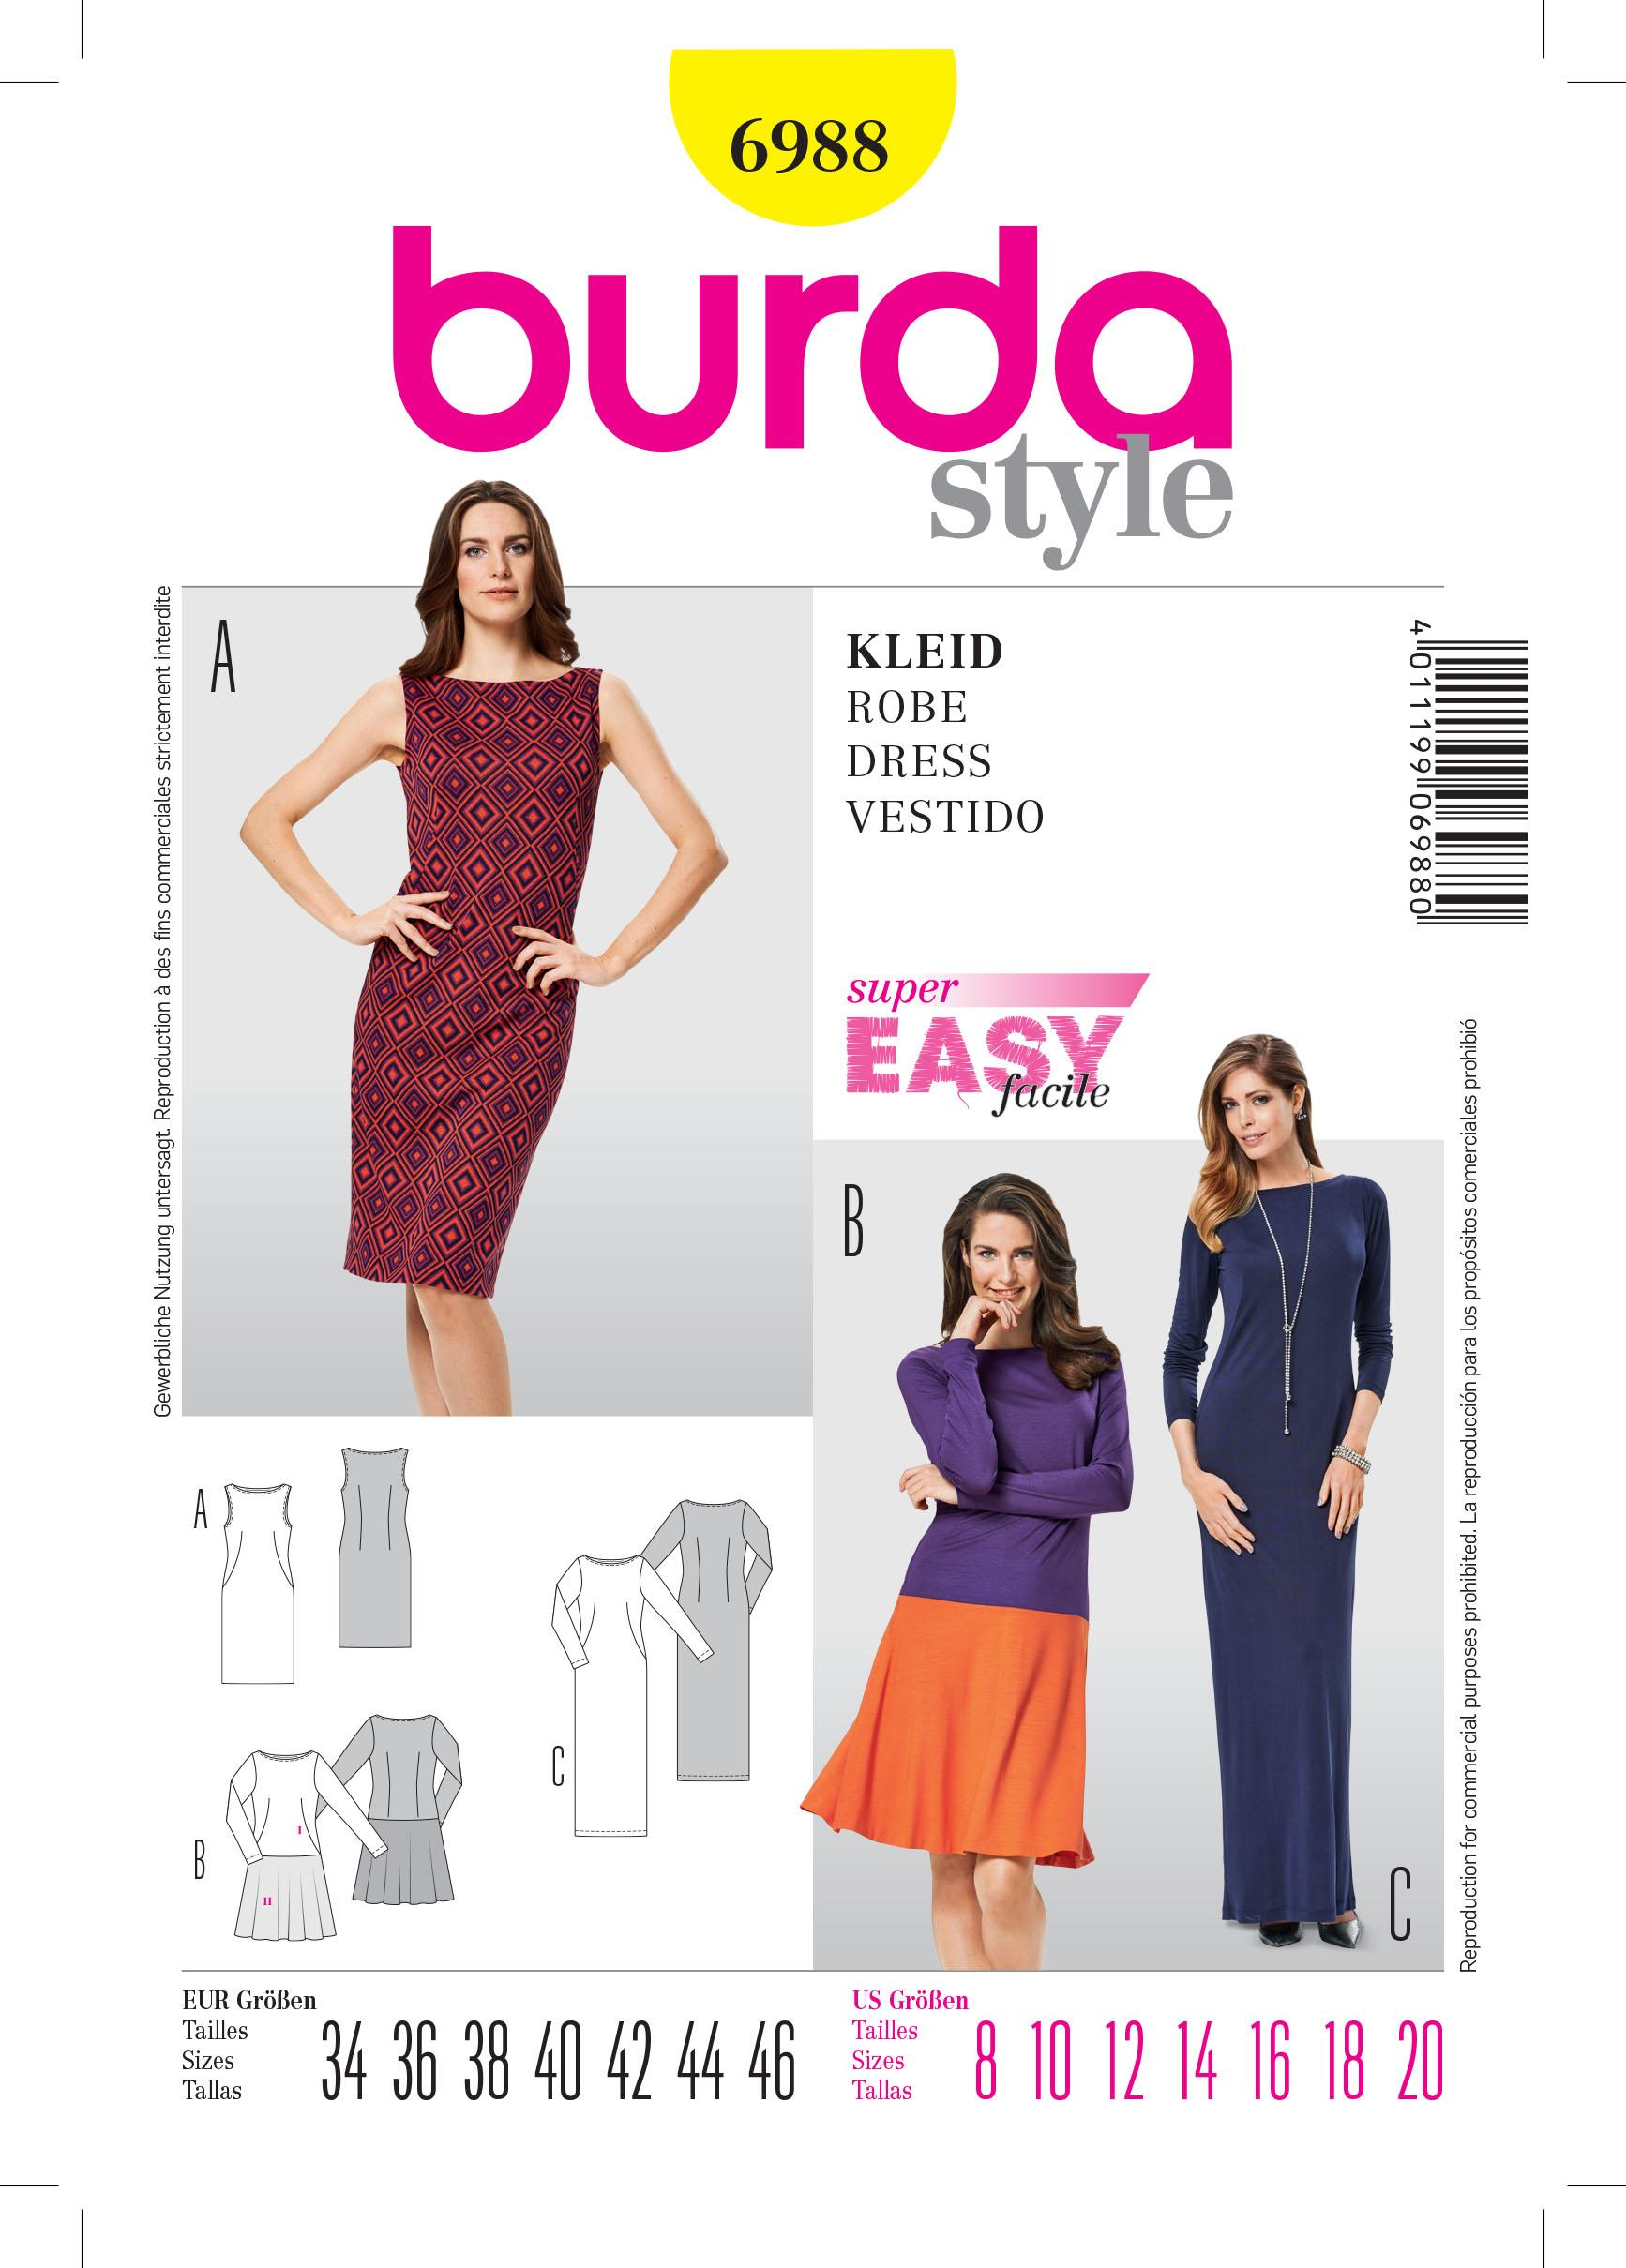 Burda B6988 Burda Dress Sewing Pattern